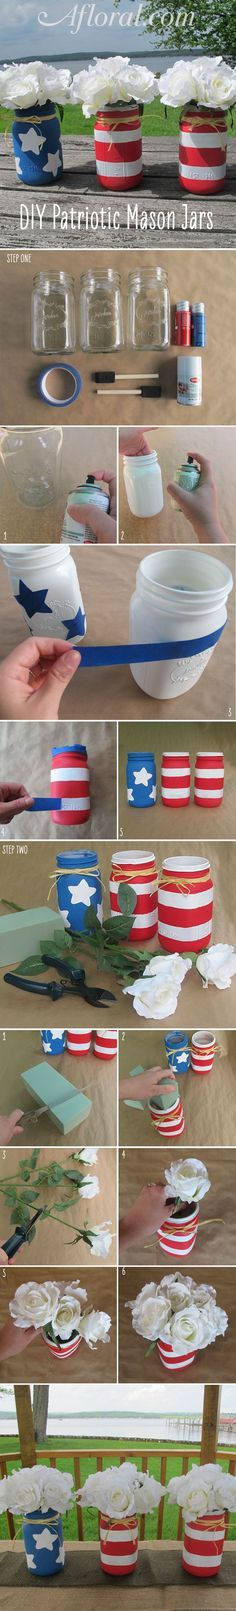 DIY Patriotic Mason Jars.   You can DIY these adorable Flag Mason Jars for your 4th of July wedding or Memorial Day centerpiece.  Find everything you need at http://Afloral.com.